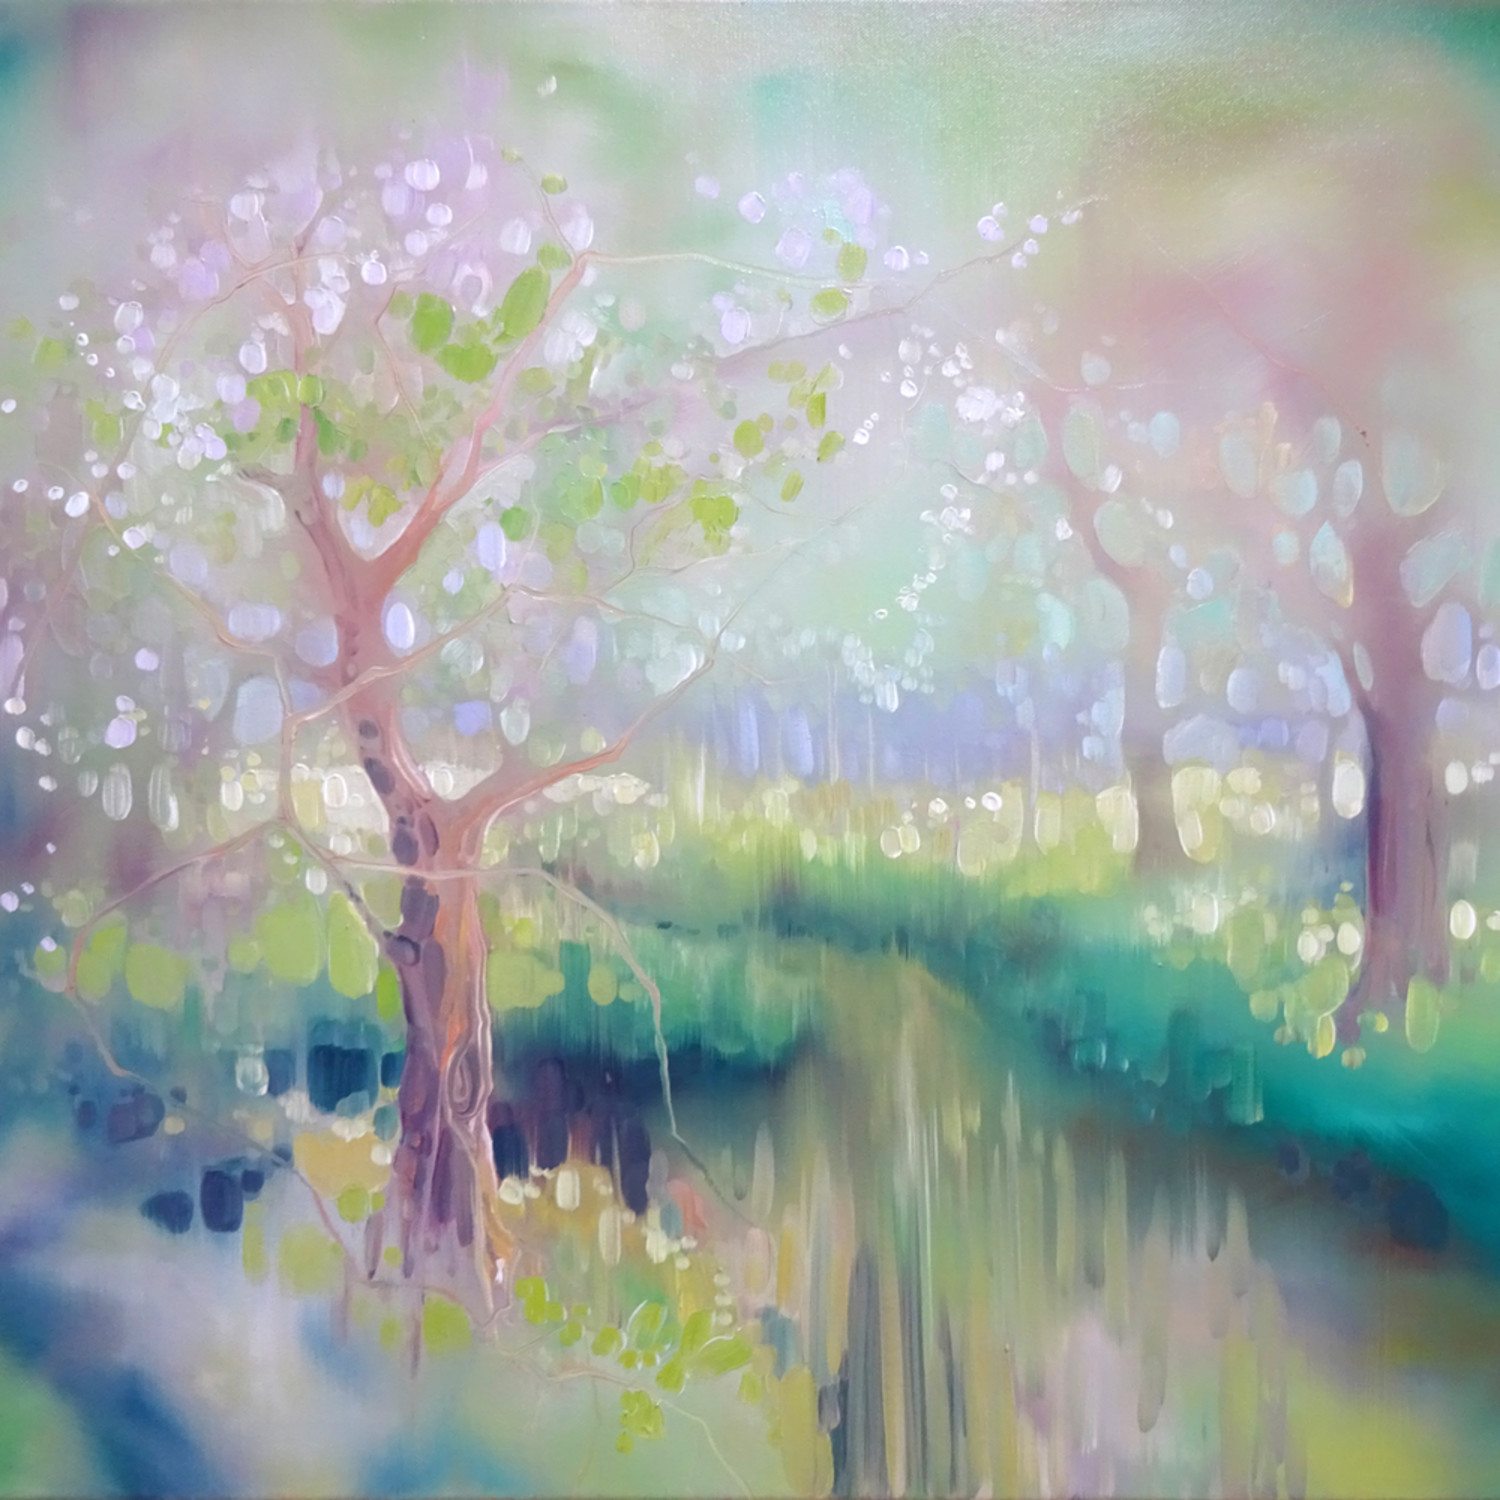 Glade by gill bustamante 72 airqr8